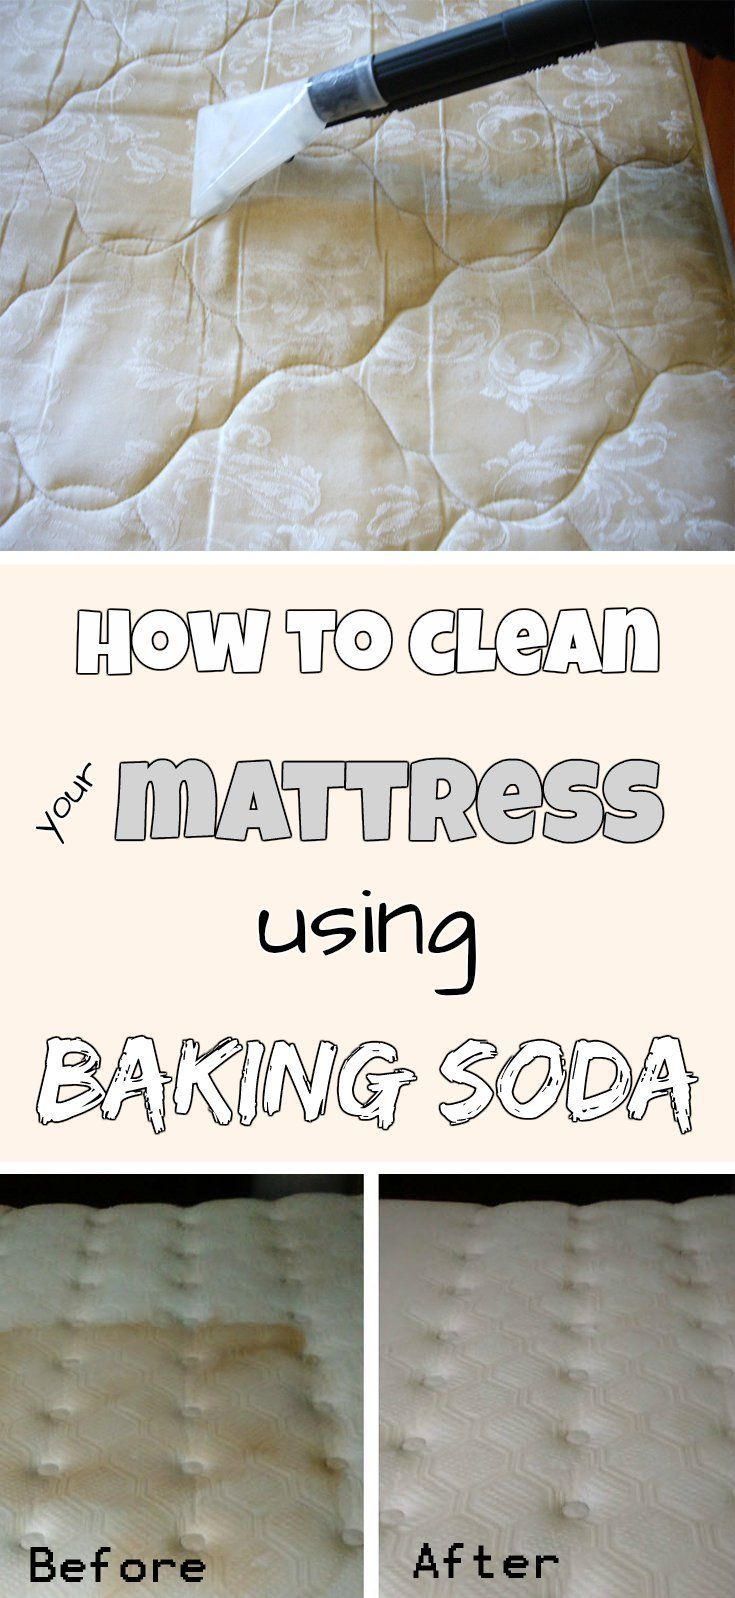 How To Clean Your Mattress Using Baking Soda Mattress Cleaning Cleaning Hacks House Cleaning Tips